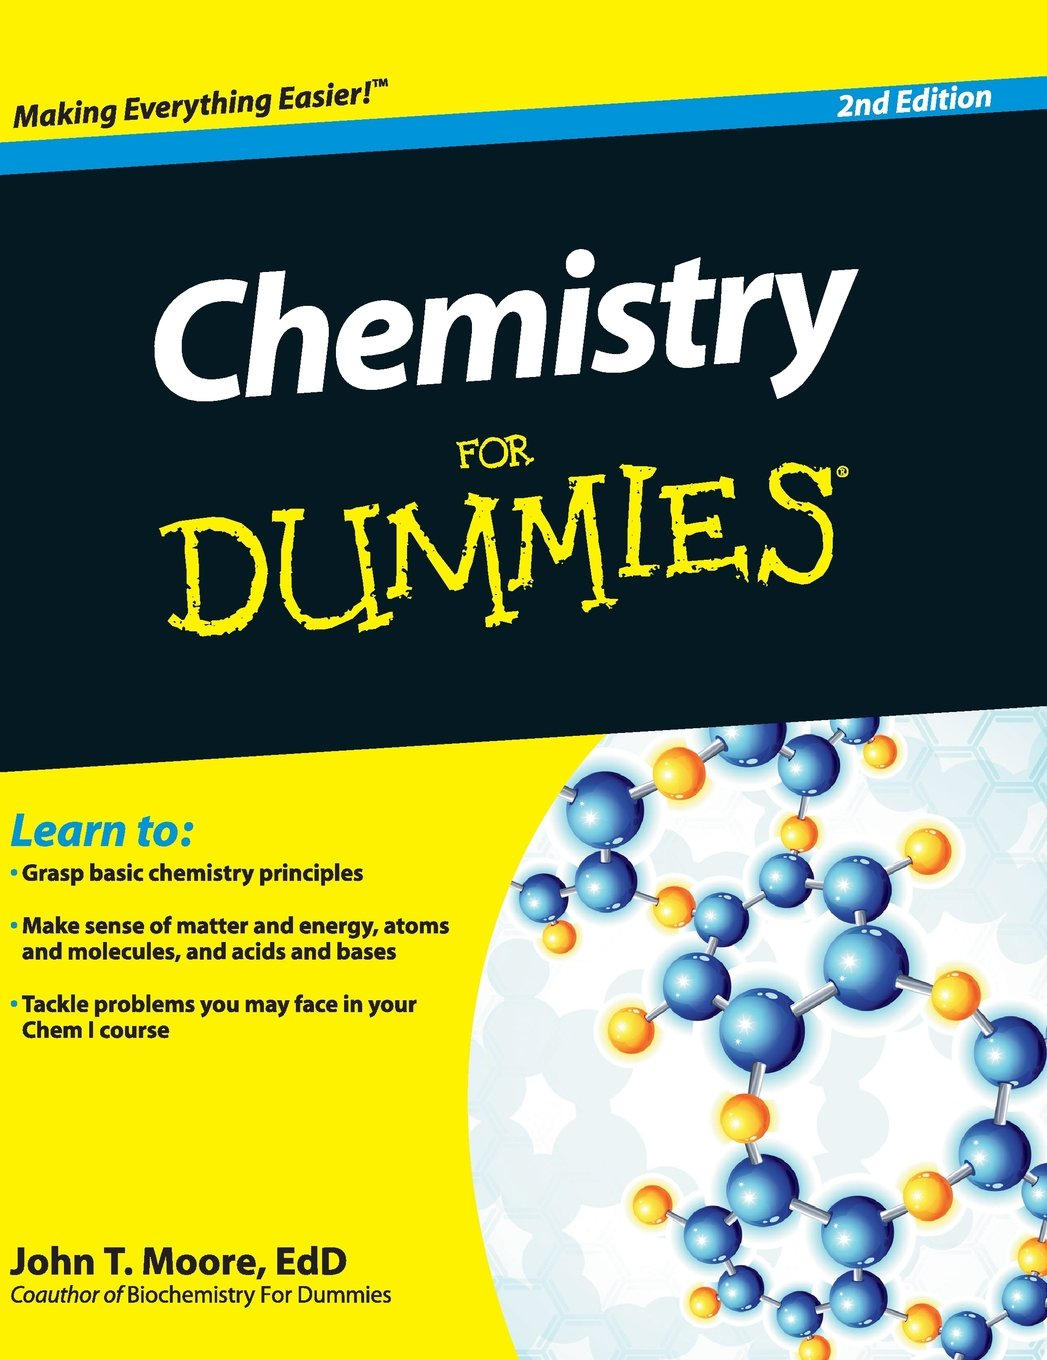 Chemistry for dummies amazon john t moore phd chemistry for dummies amazon john t moore phd 9781119173977 books gamestrikefo Images